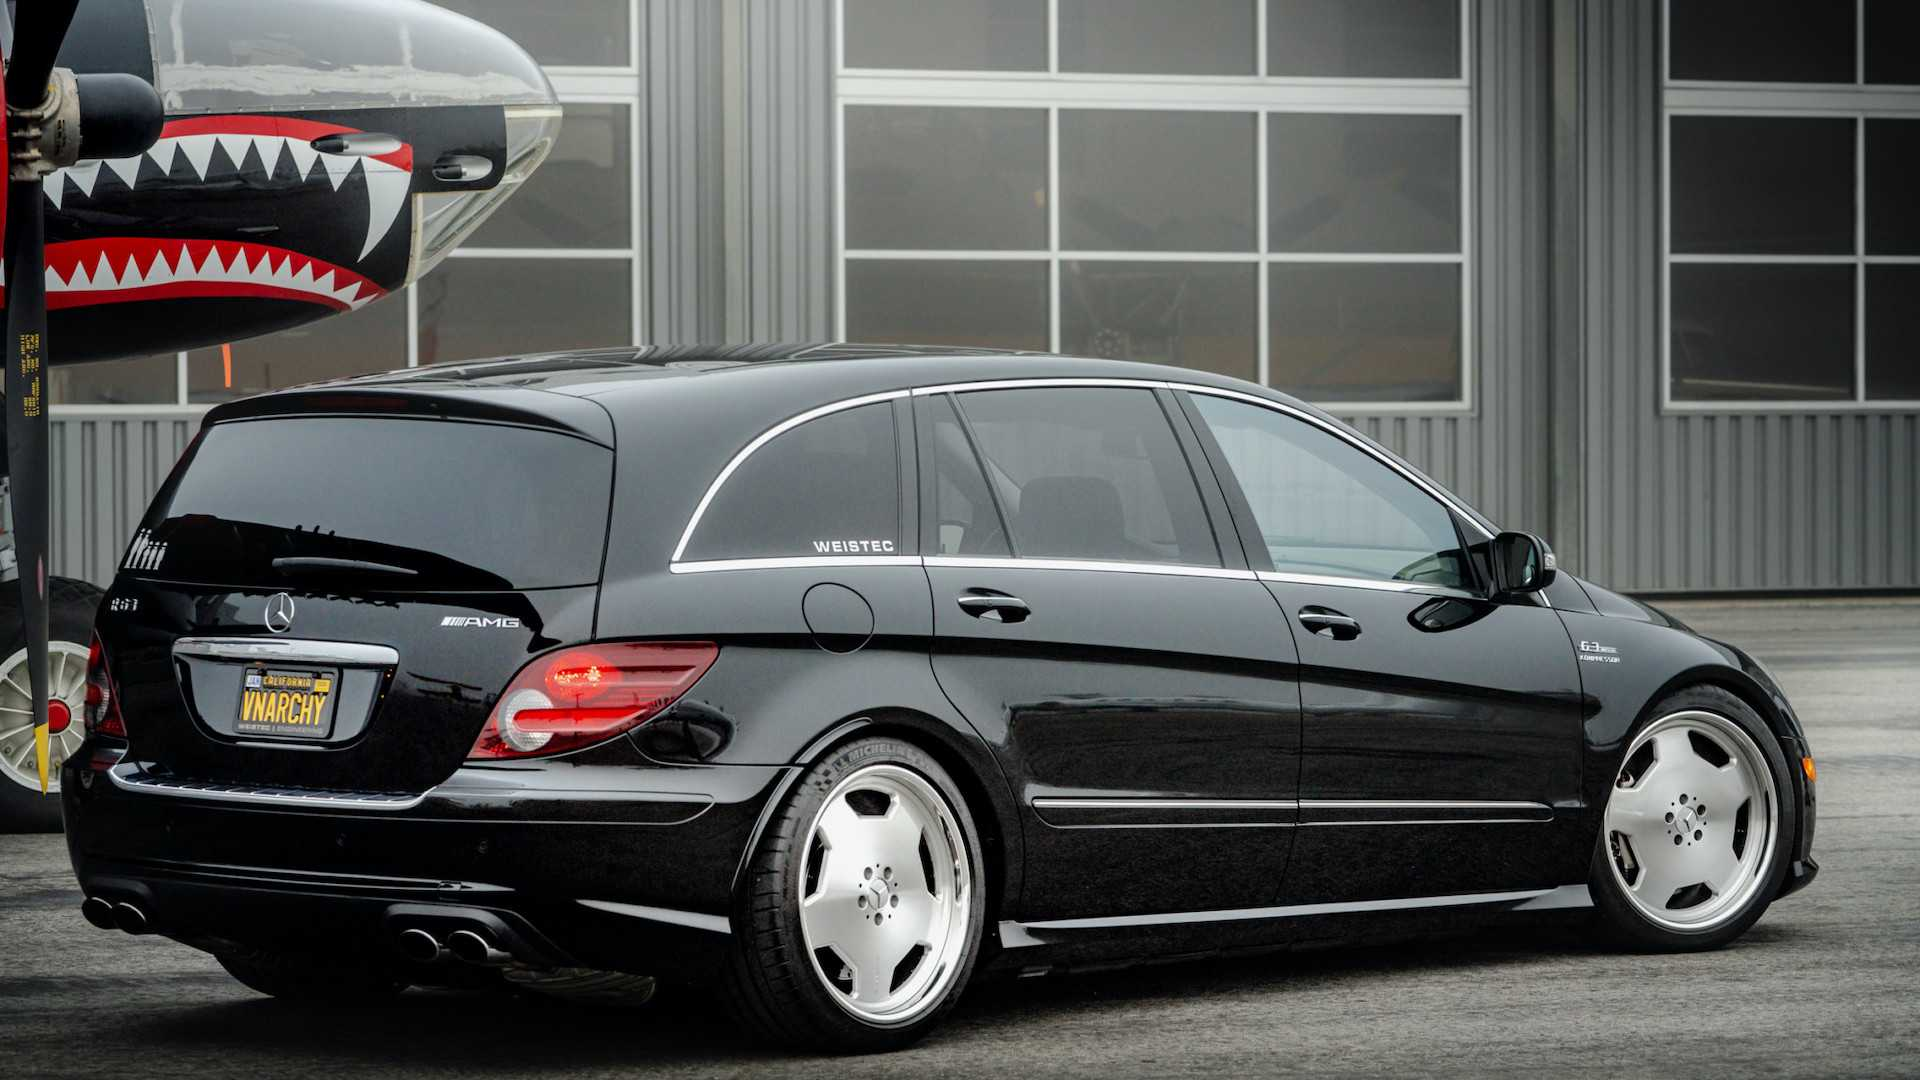 700-HP Mercedes R63 AMG Is The Minivan You Never Knew You ...